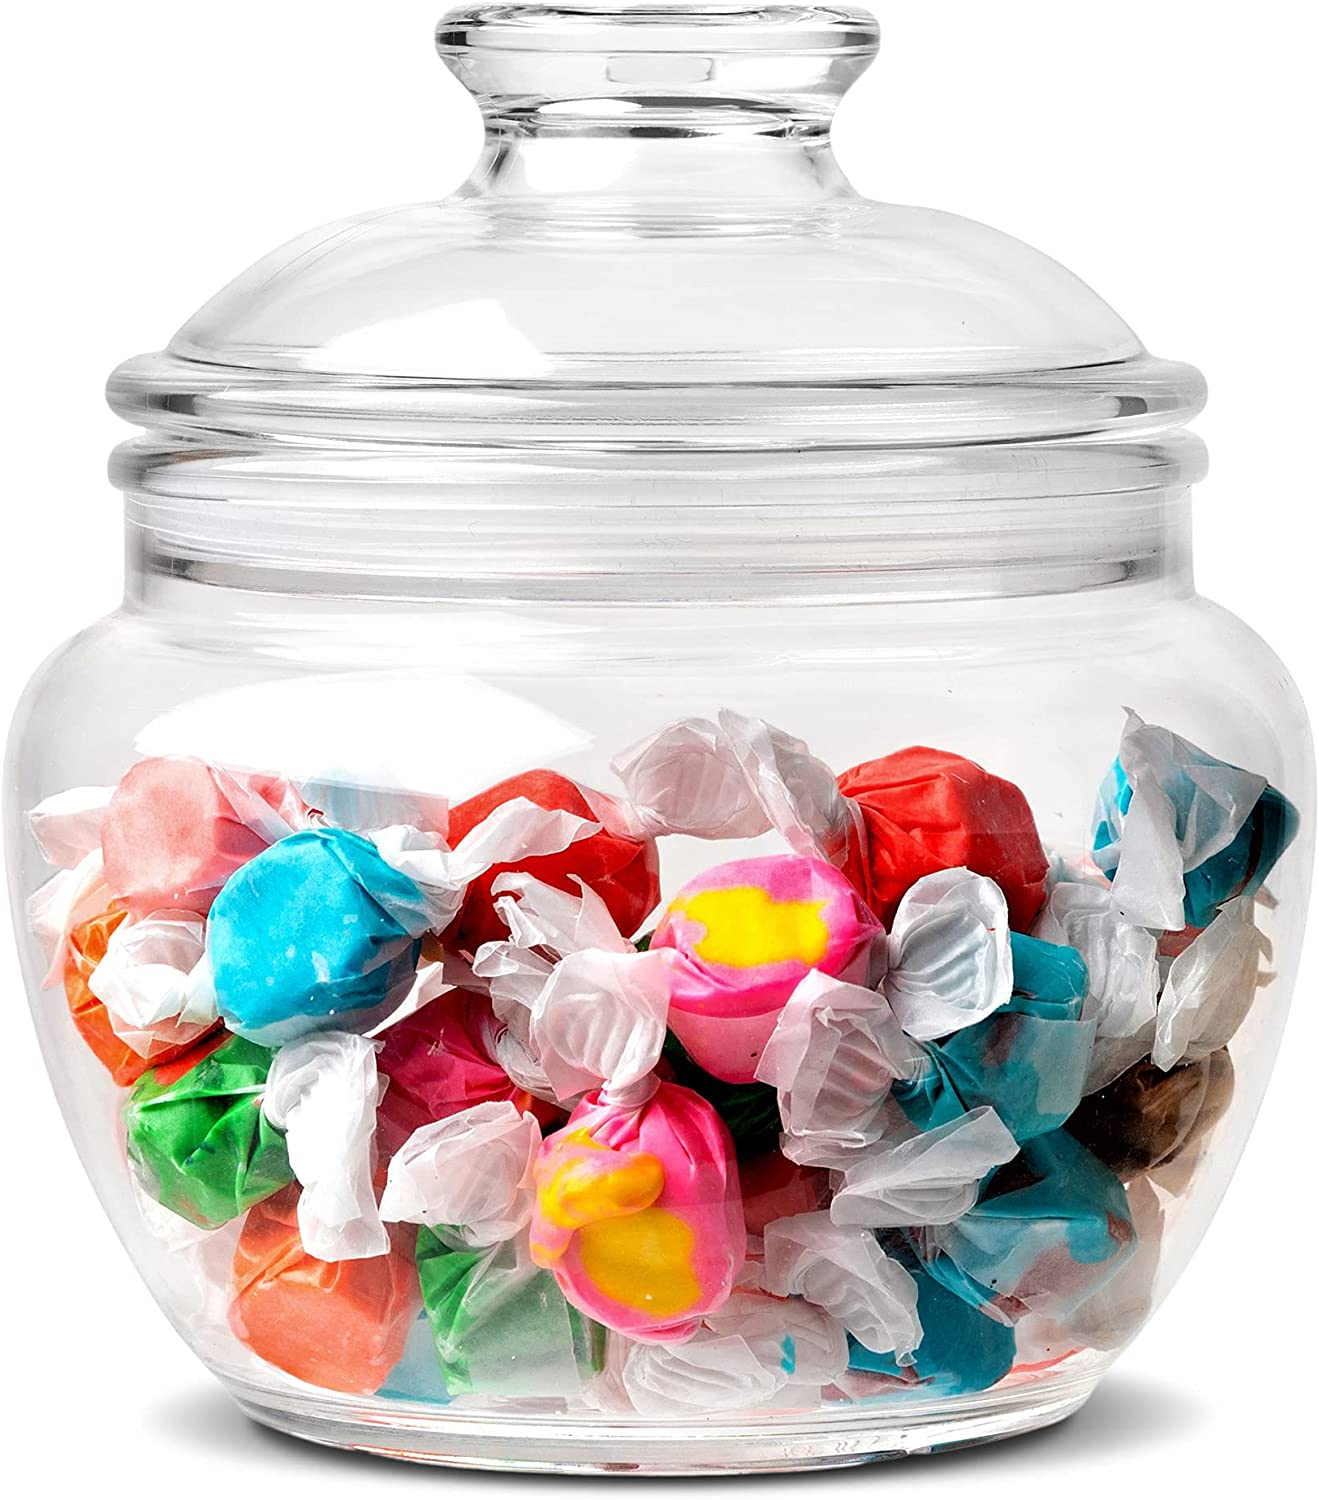 Modern Innovations 40 oz Candy & Cookie Jar with Lid, Premium Acrylic Clear Apothecary Jar, Wedding & Home Décor Centerpiece Cookie Candy Buffet Decorative Kitchen